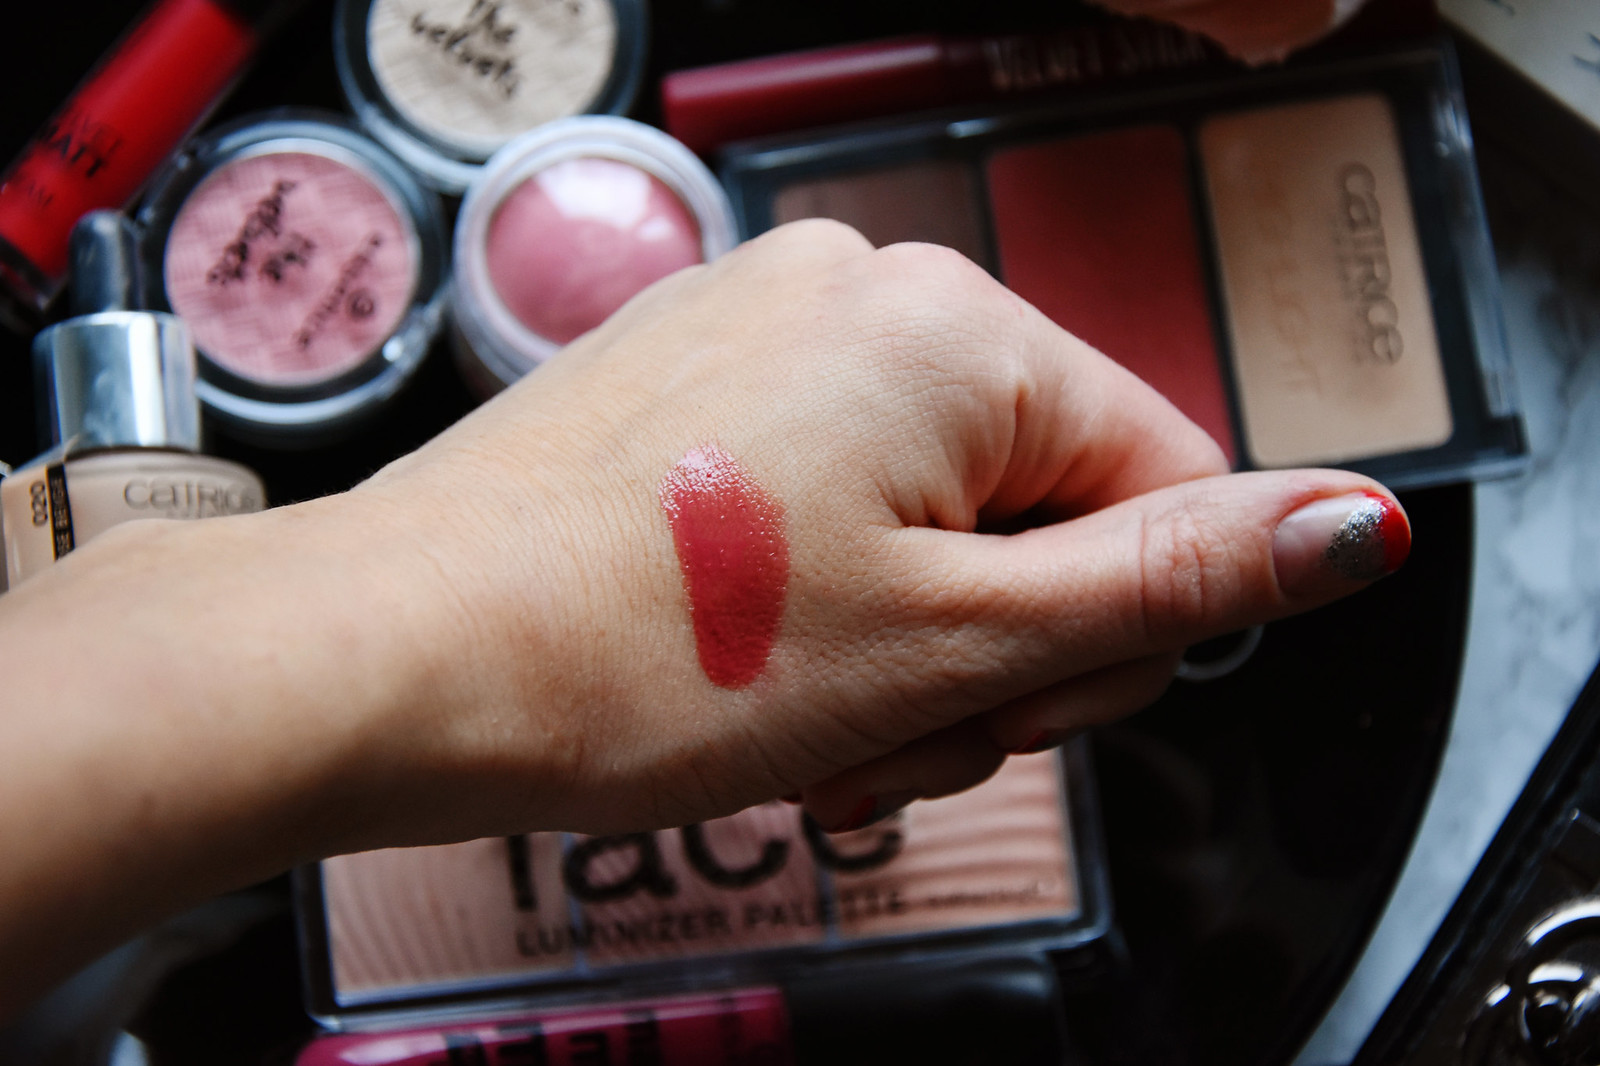 Catrice Shine appeal fluid lipstick review